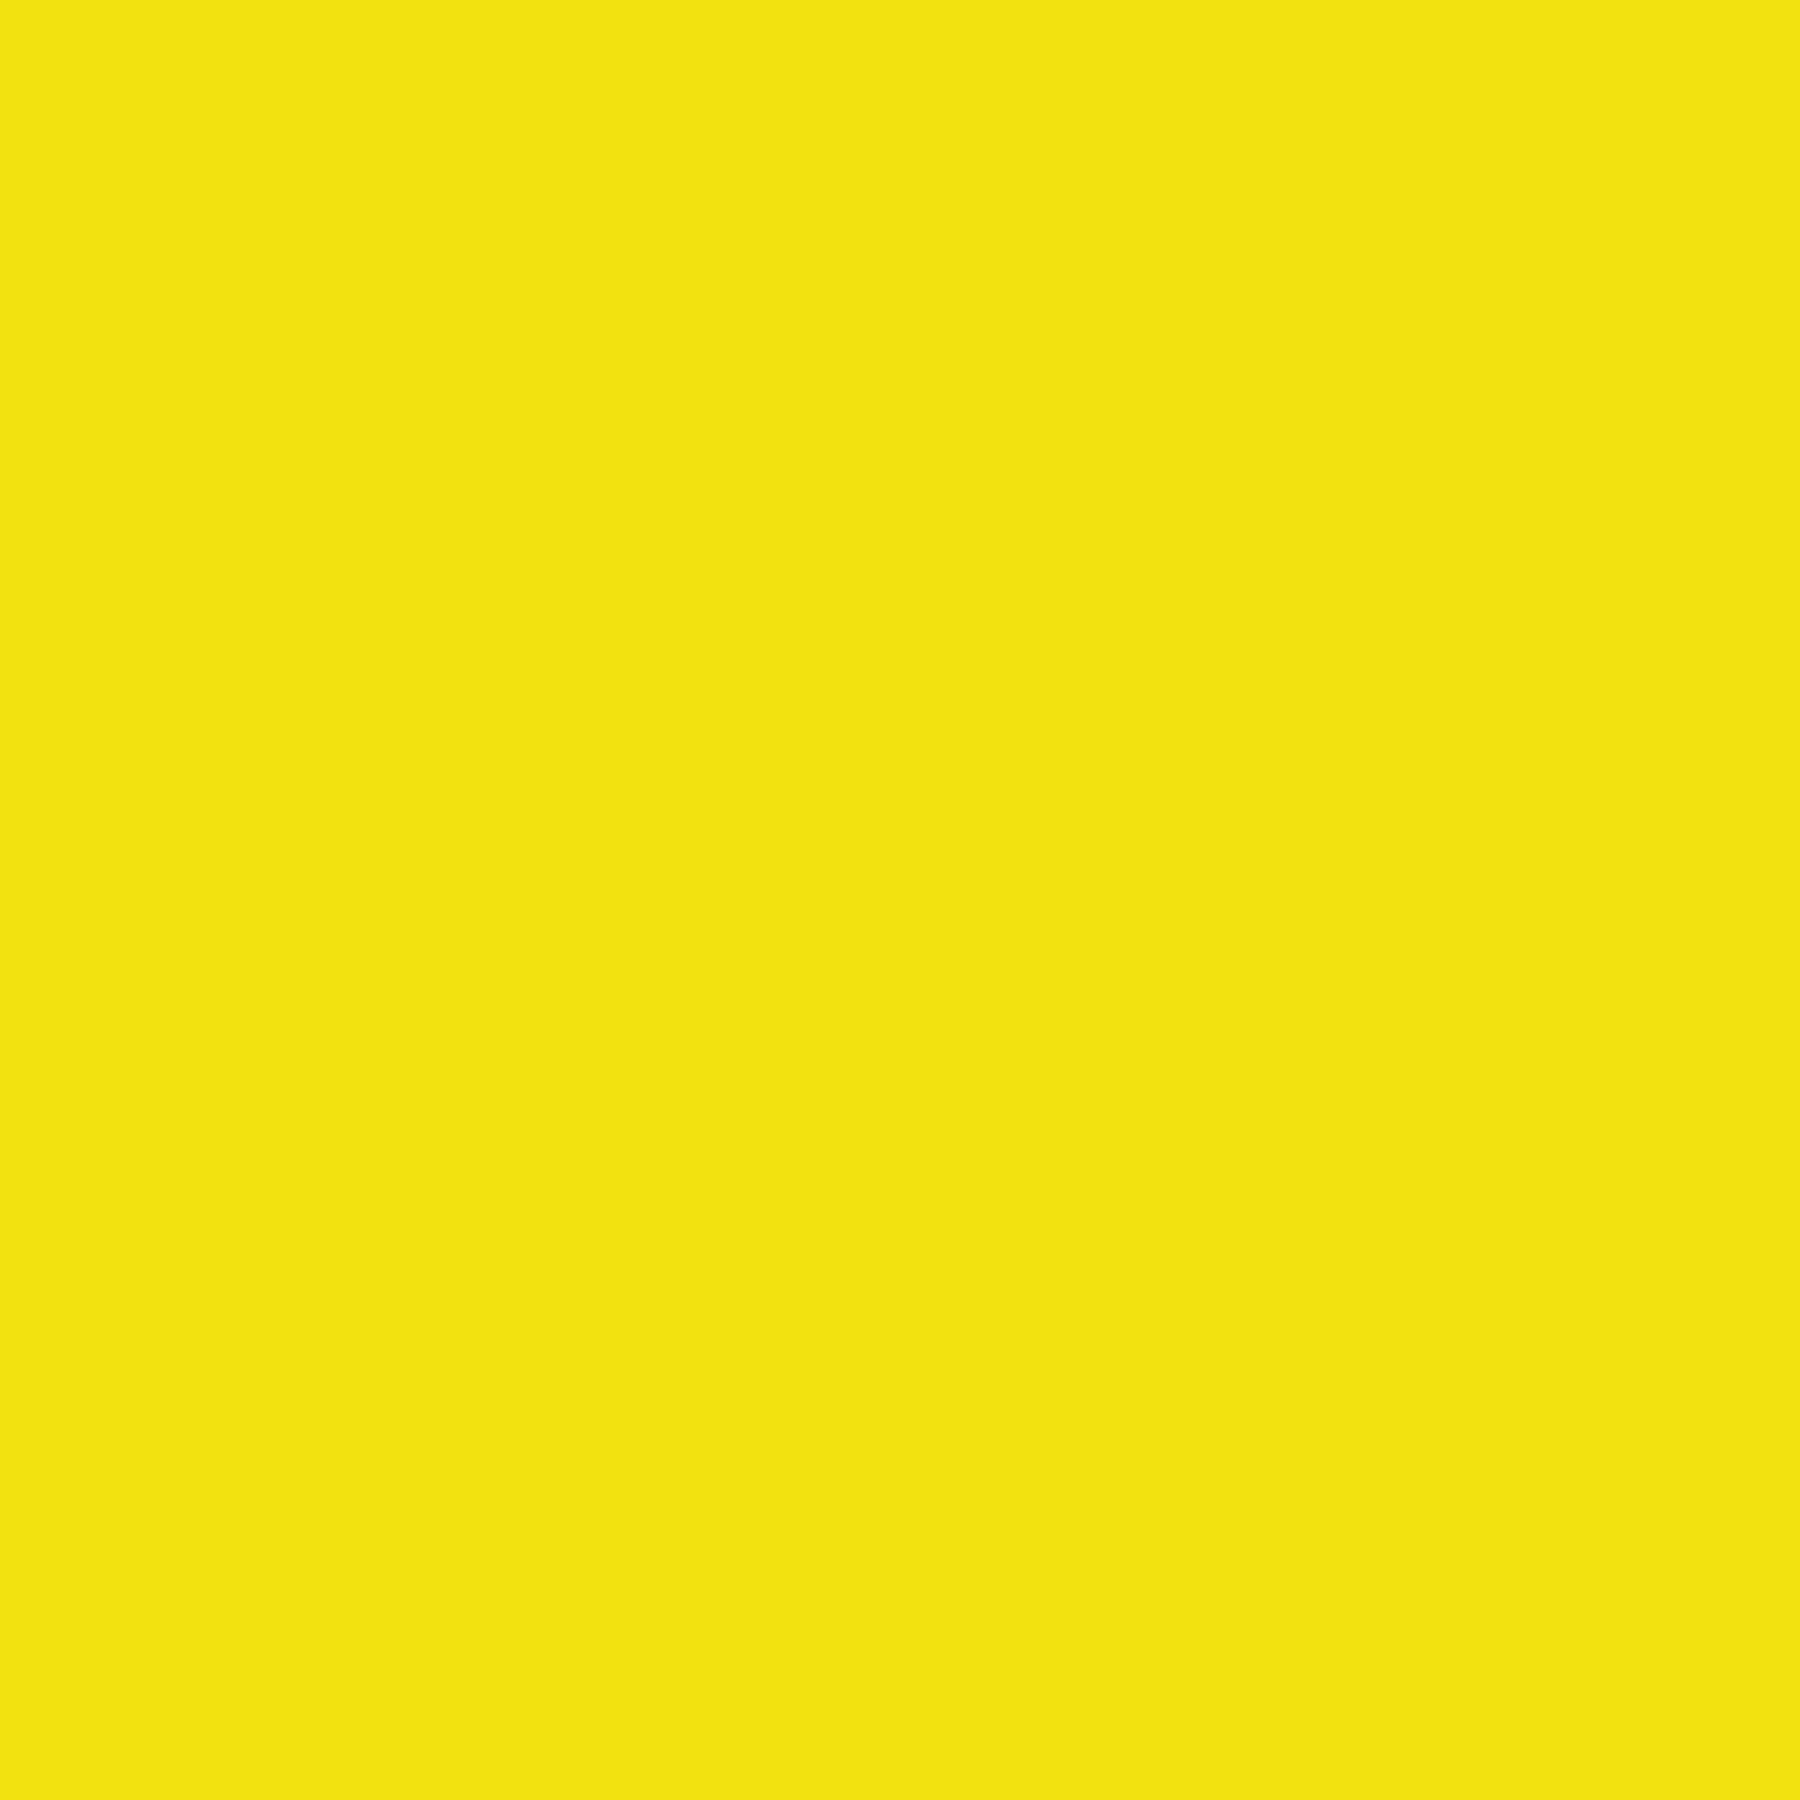 Brimstone Yellow - Oracal 651